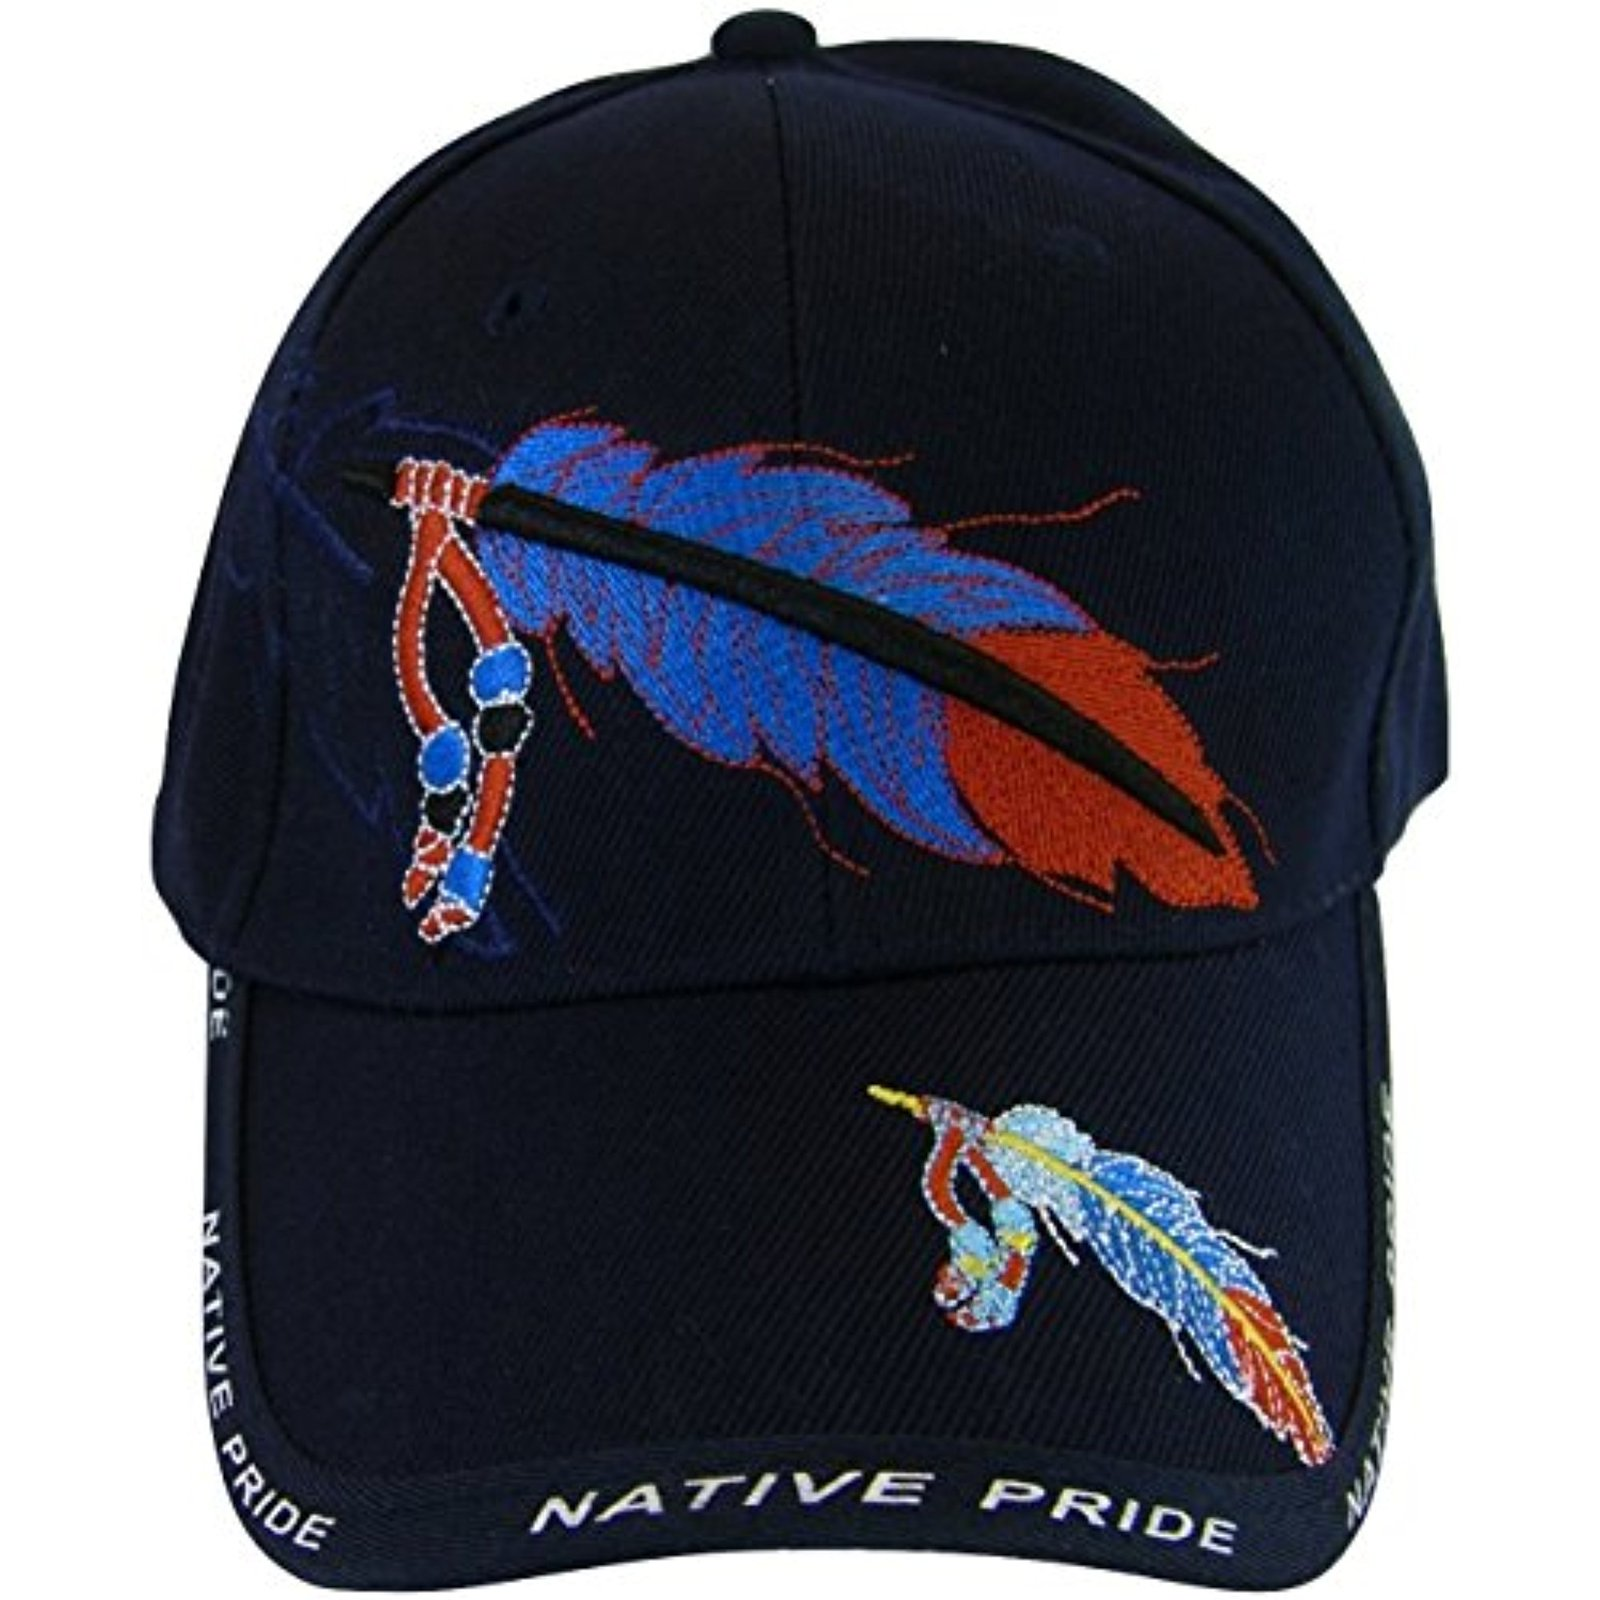 fce9fee73ac Native Pride Feather Men s Adjustable and 50 similar items